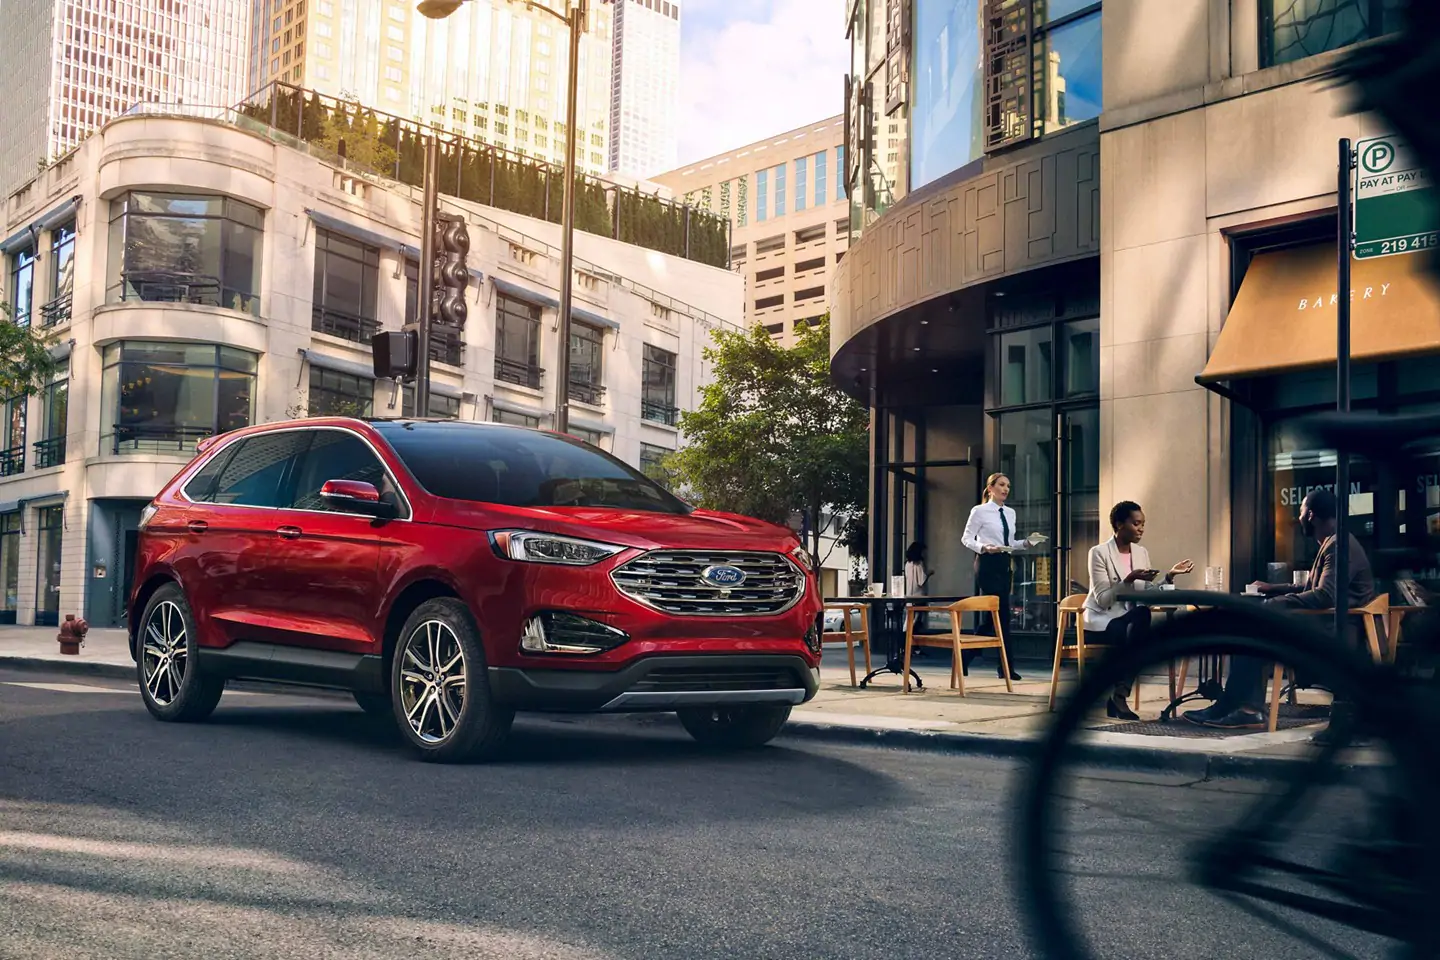 Ford Edge Vs Escape >> 2019 Ford Edge Vs Escape Vs Explorer Vs Ecosport Comparison